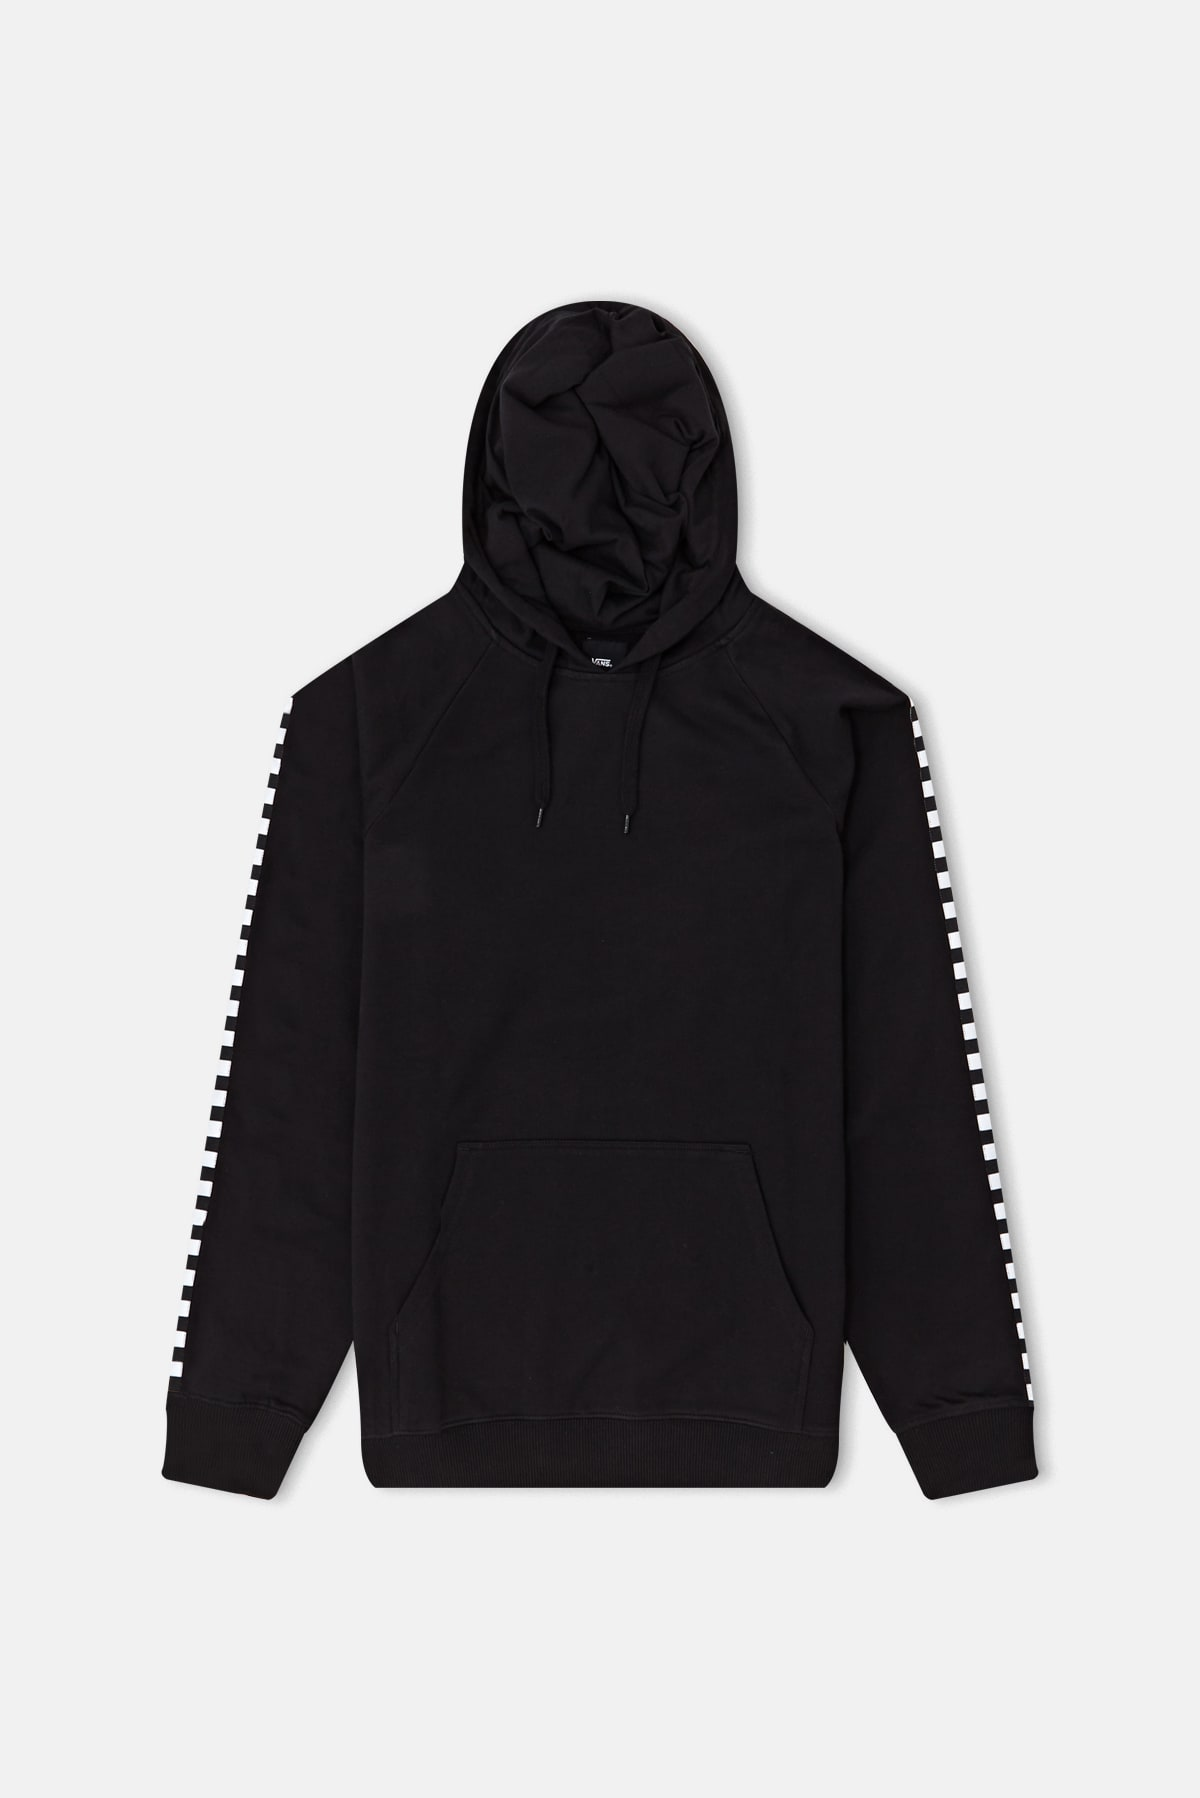 Vans Checker Taped Hoodie available from Priory 9580a79f4